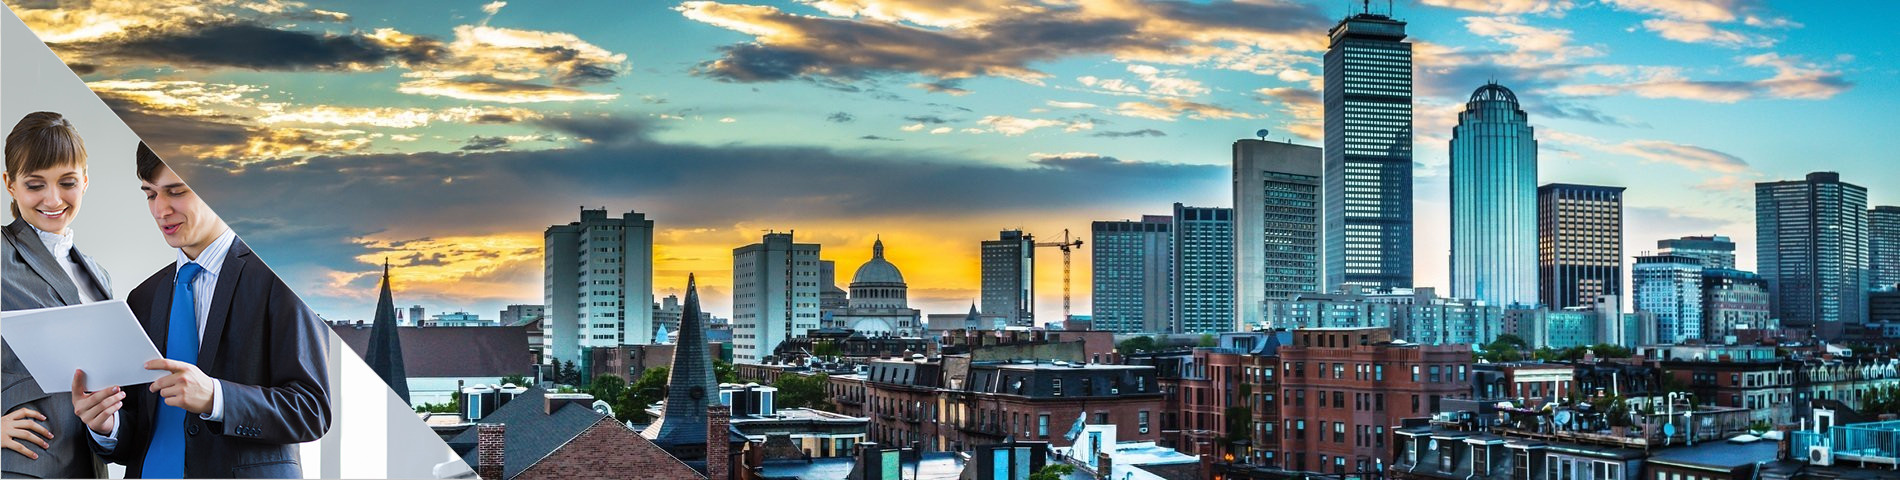 Boston - Individuell businesskurs